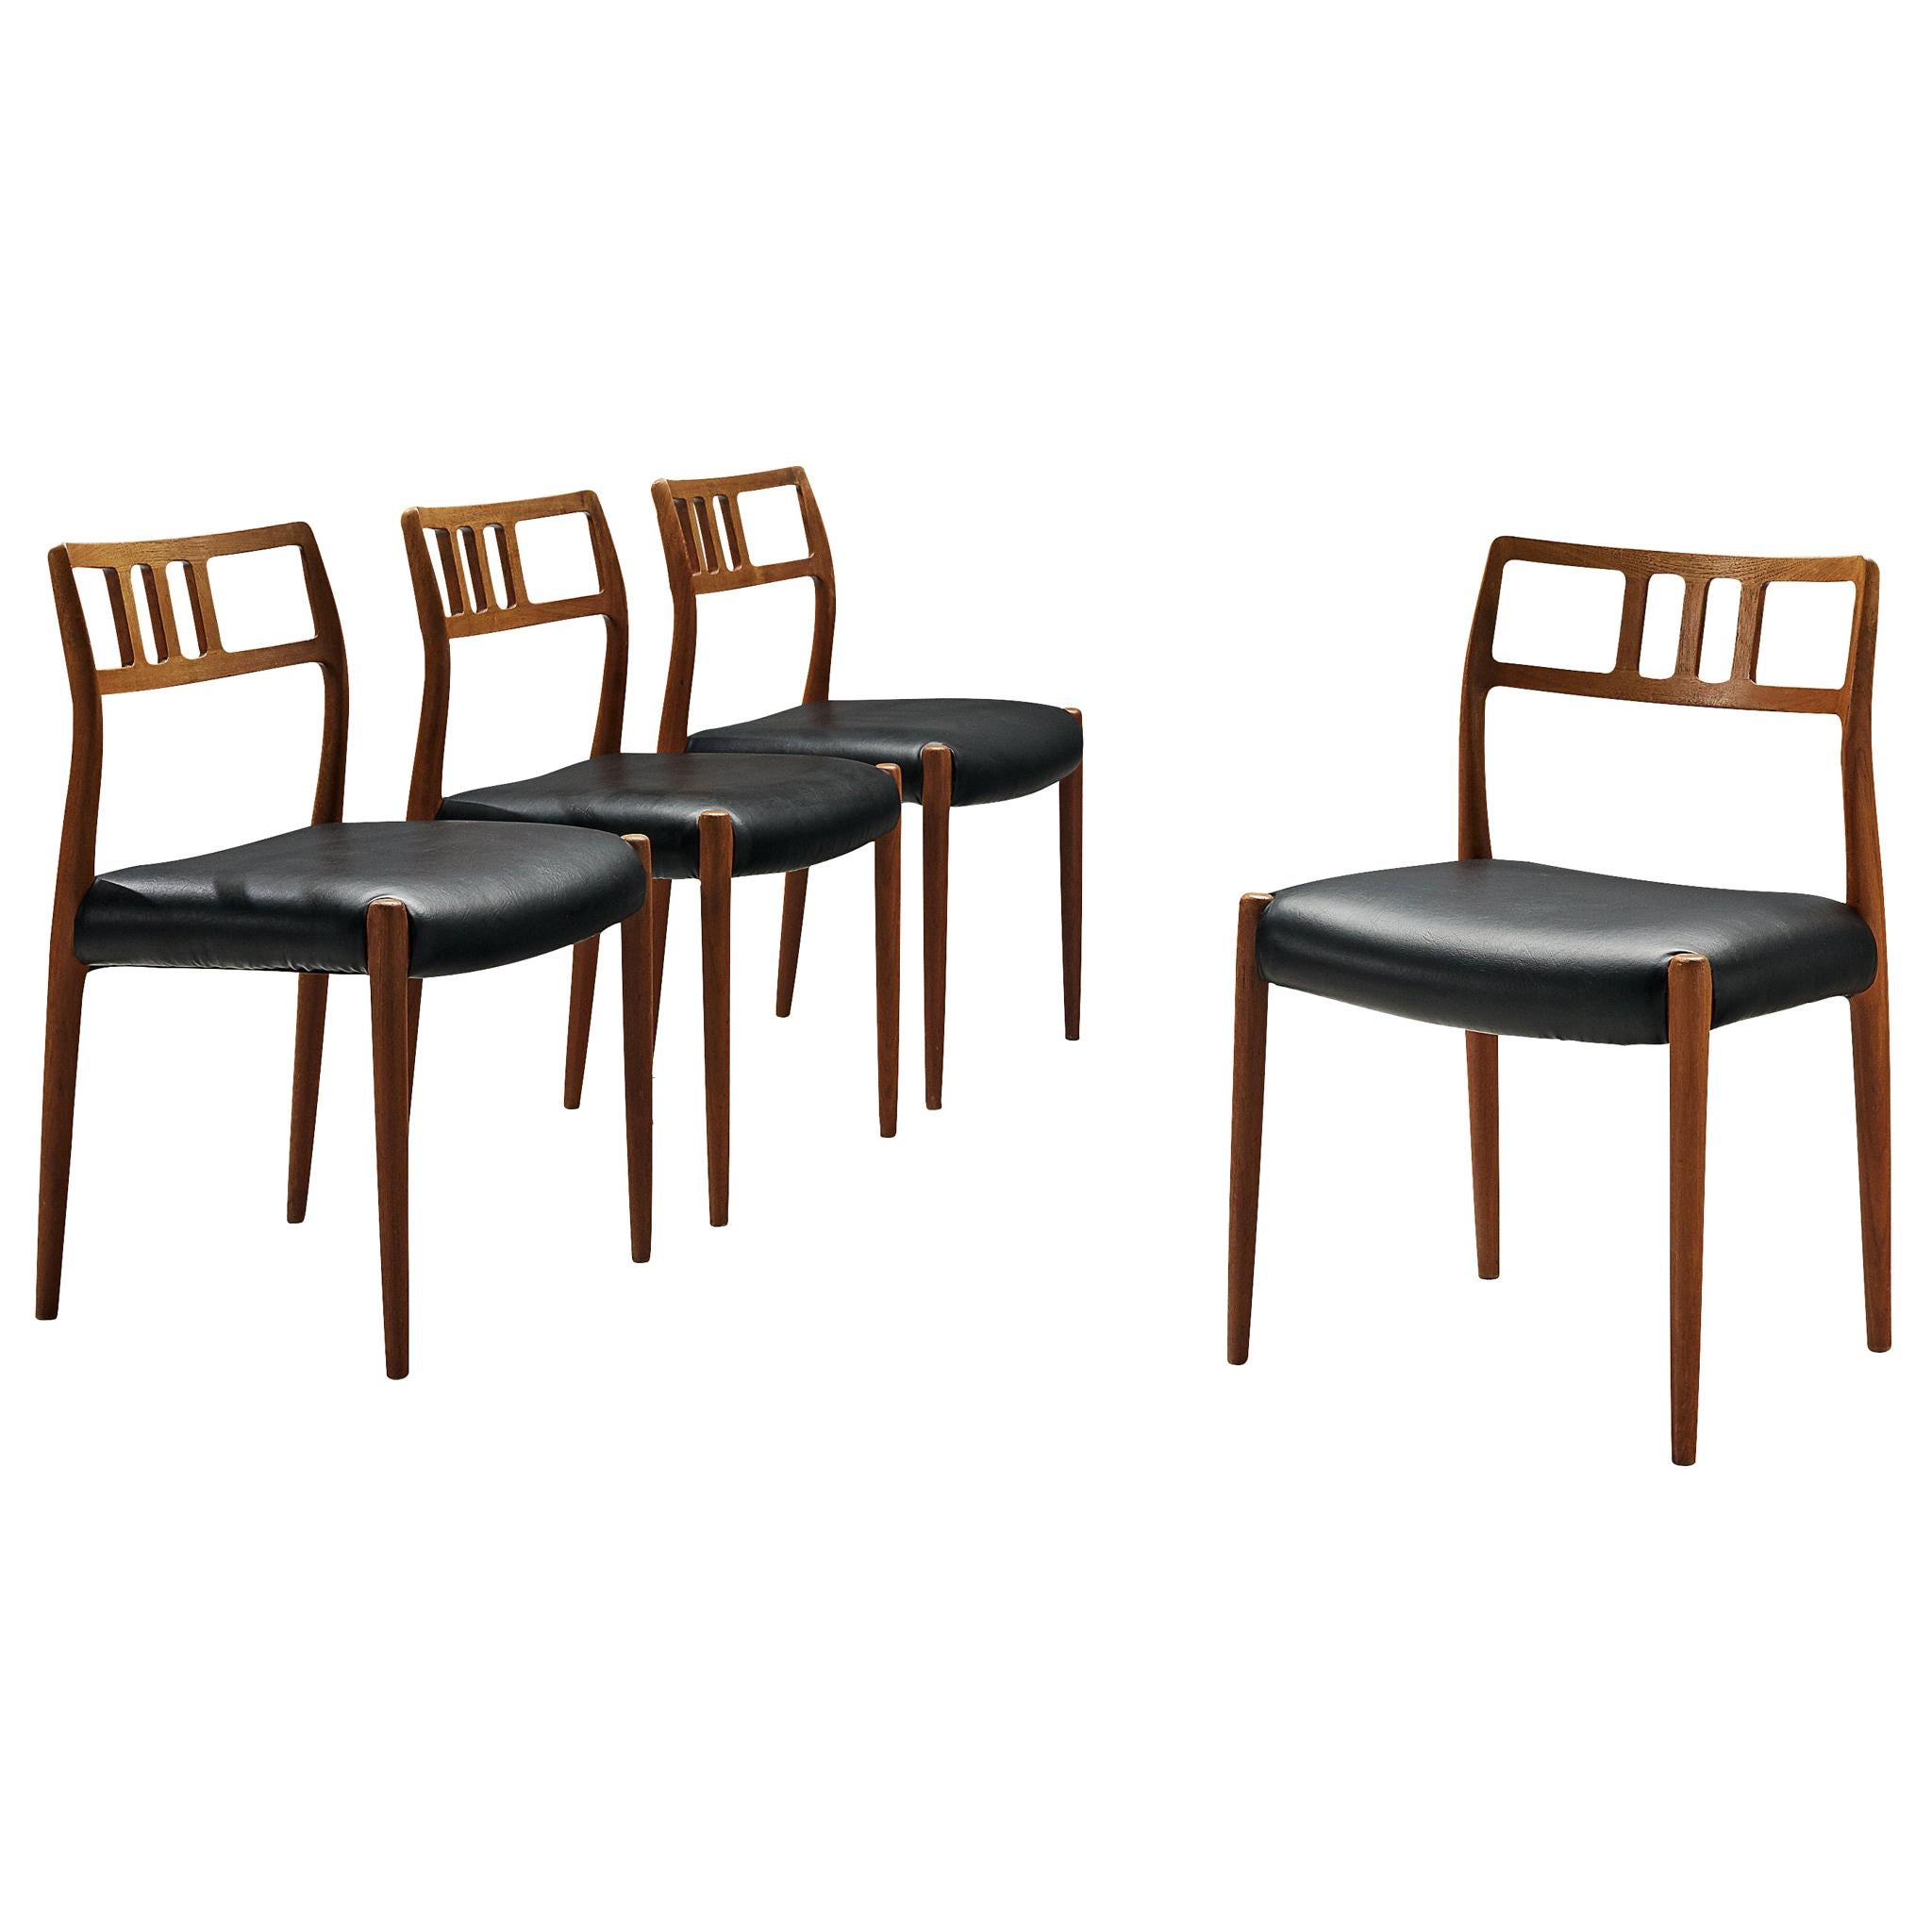 Set of Danish Dining Chairs in Teak and Leather